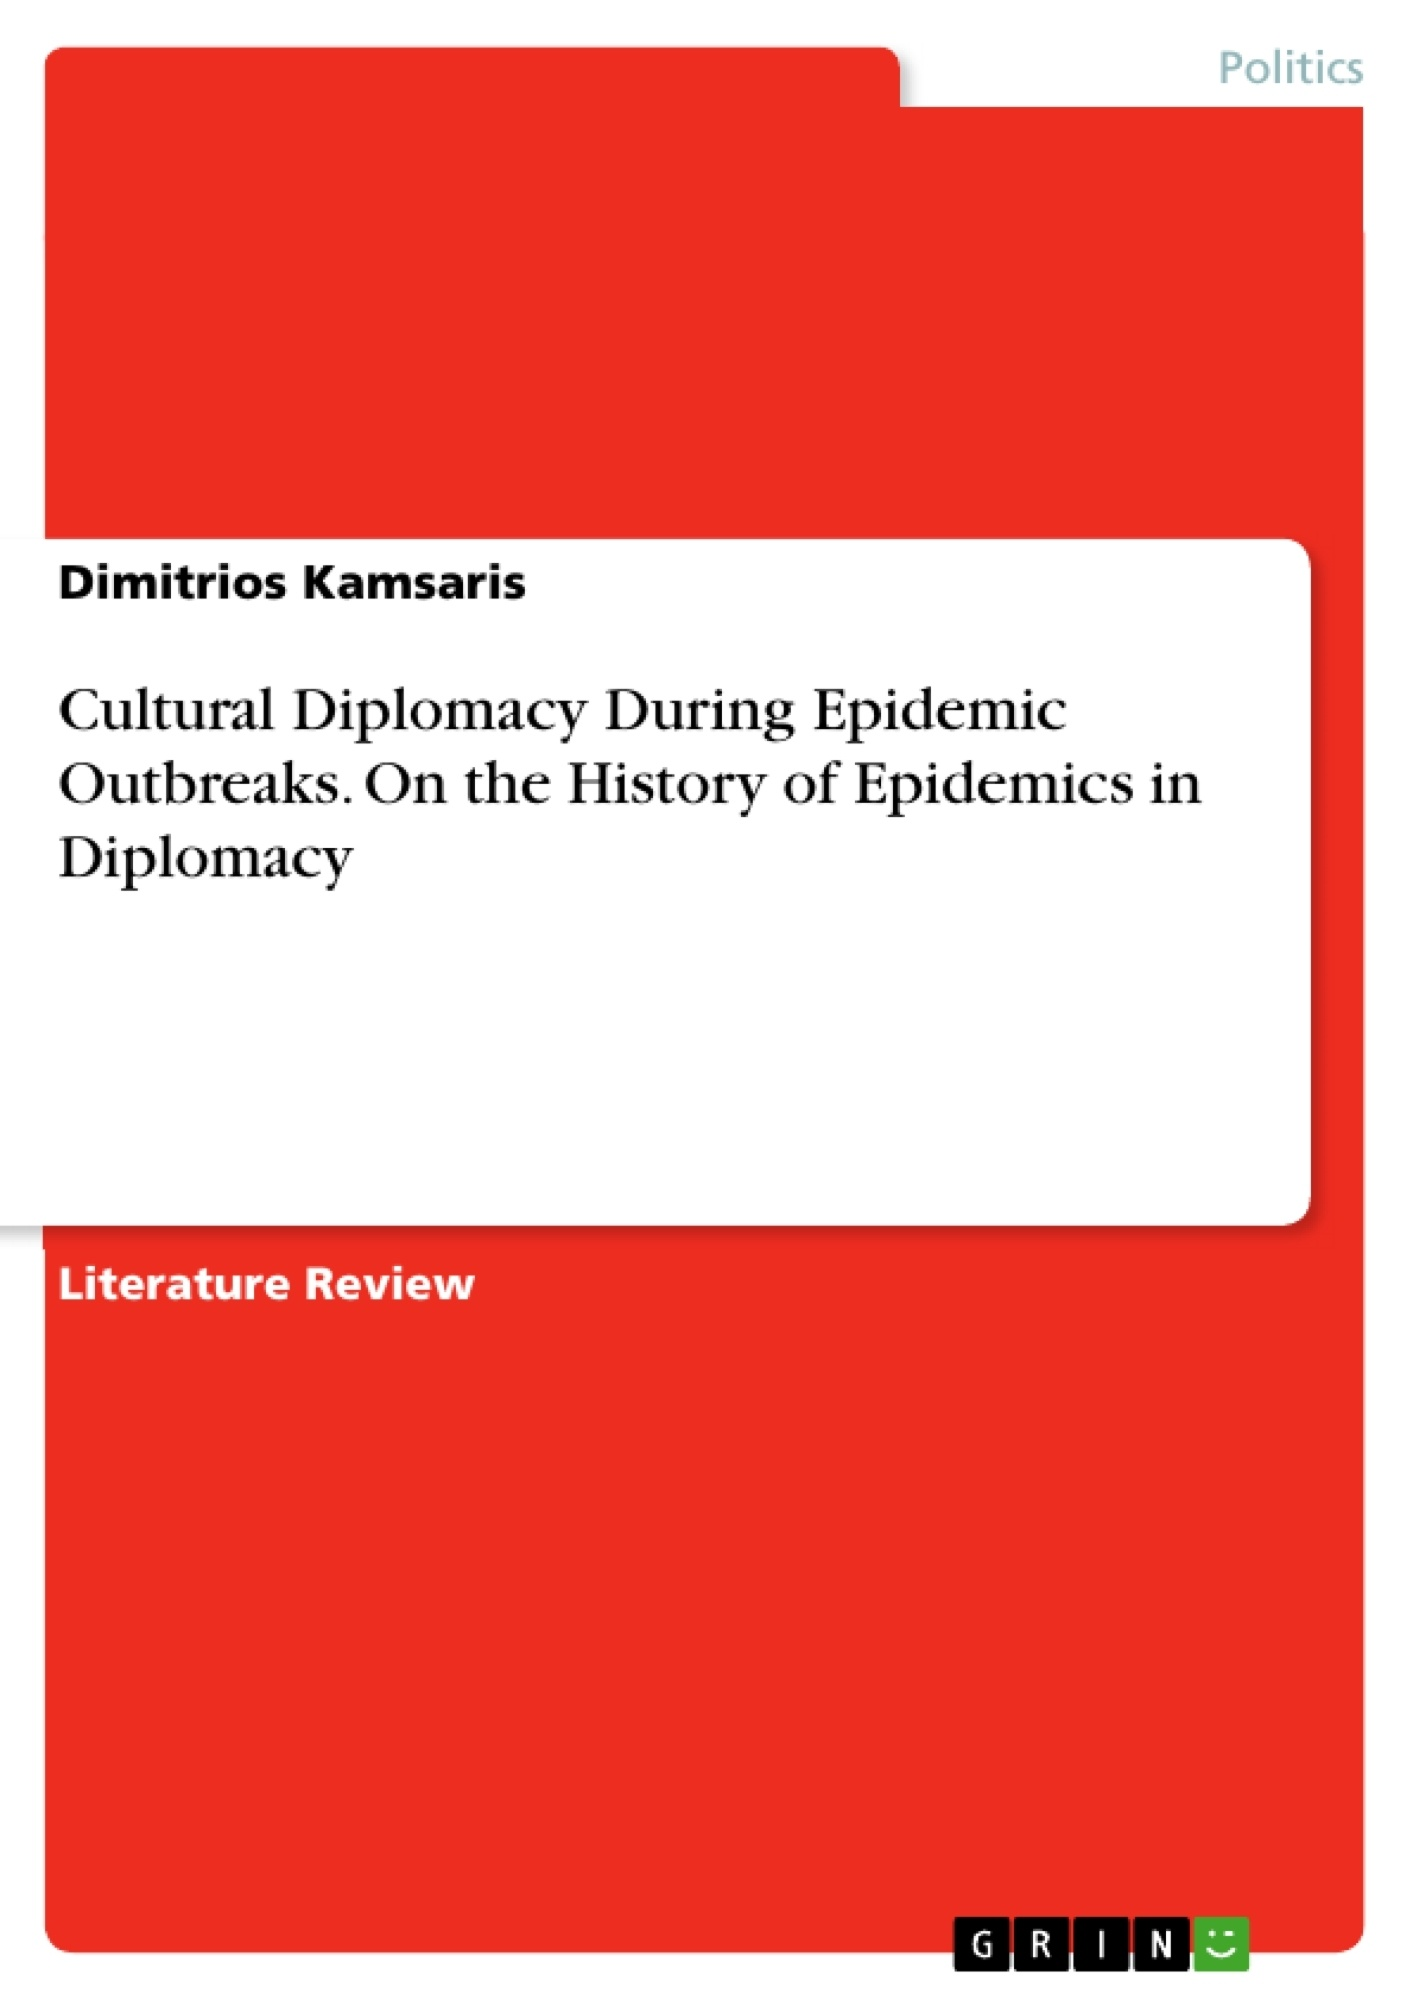 Title: Cultural Diplomacy During  Epidemic Outbreaks. On the History of Epidemics in Diplomacy